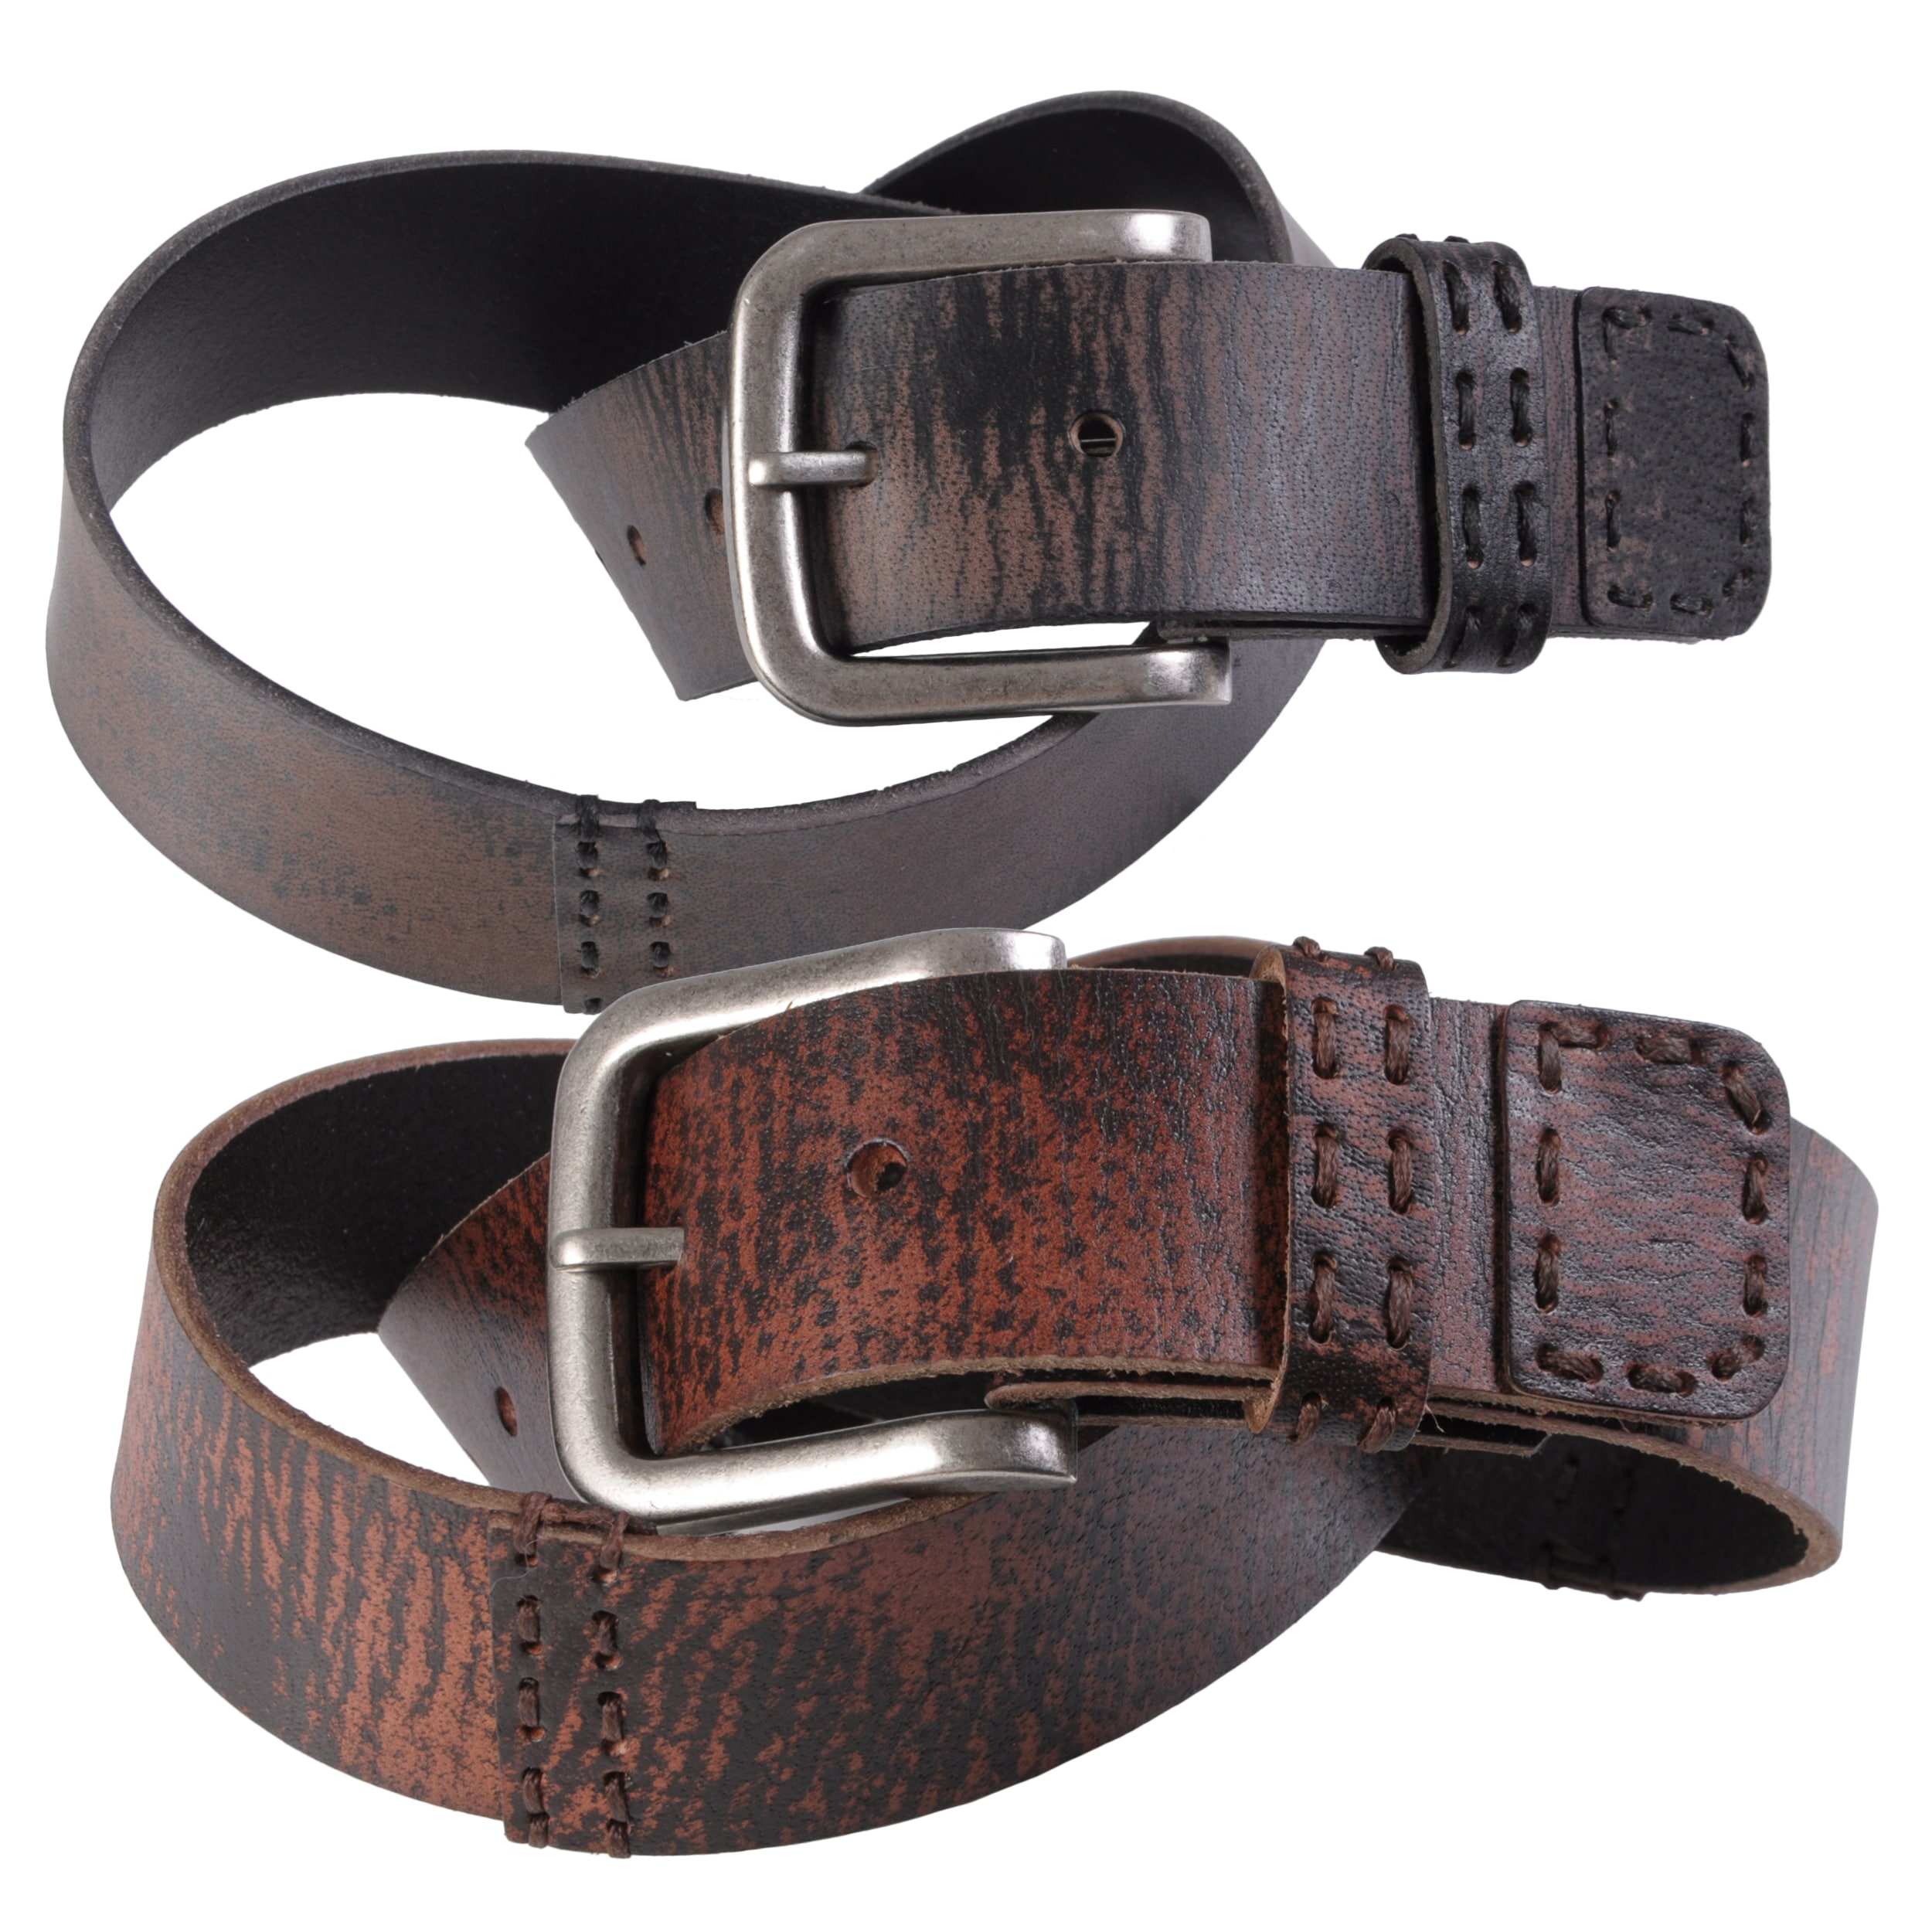 Journee Collection Women's Casual Distressed Belt